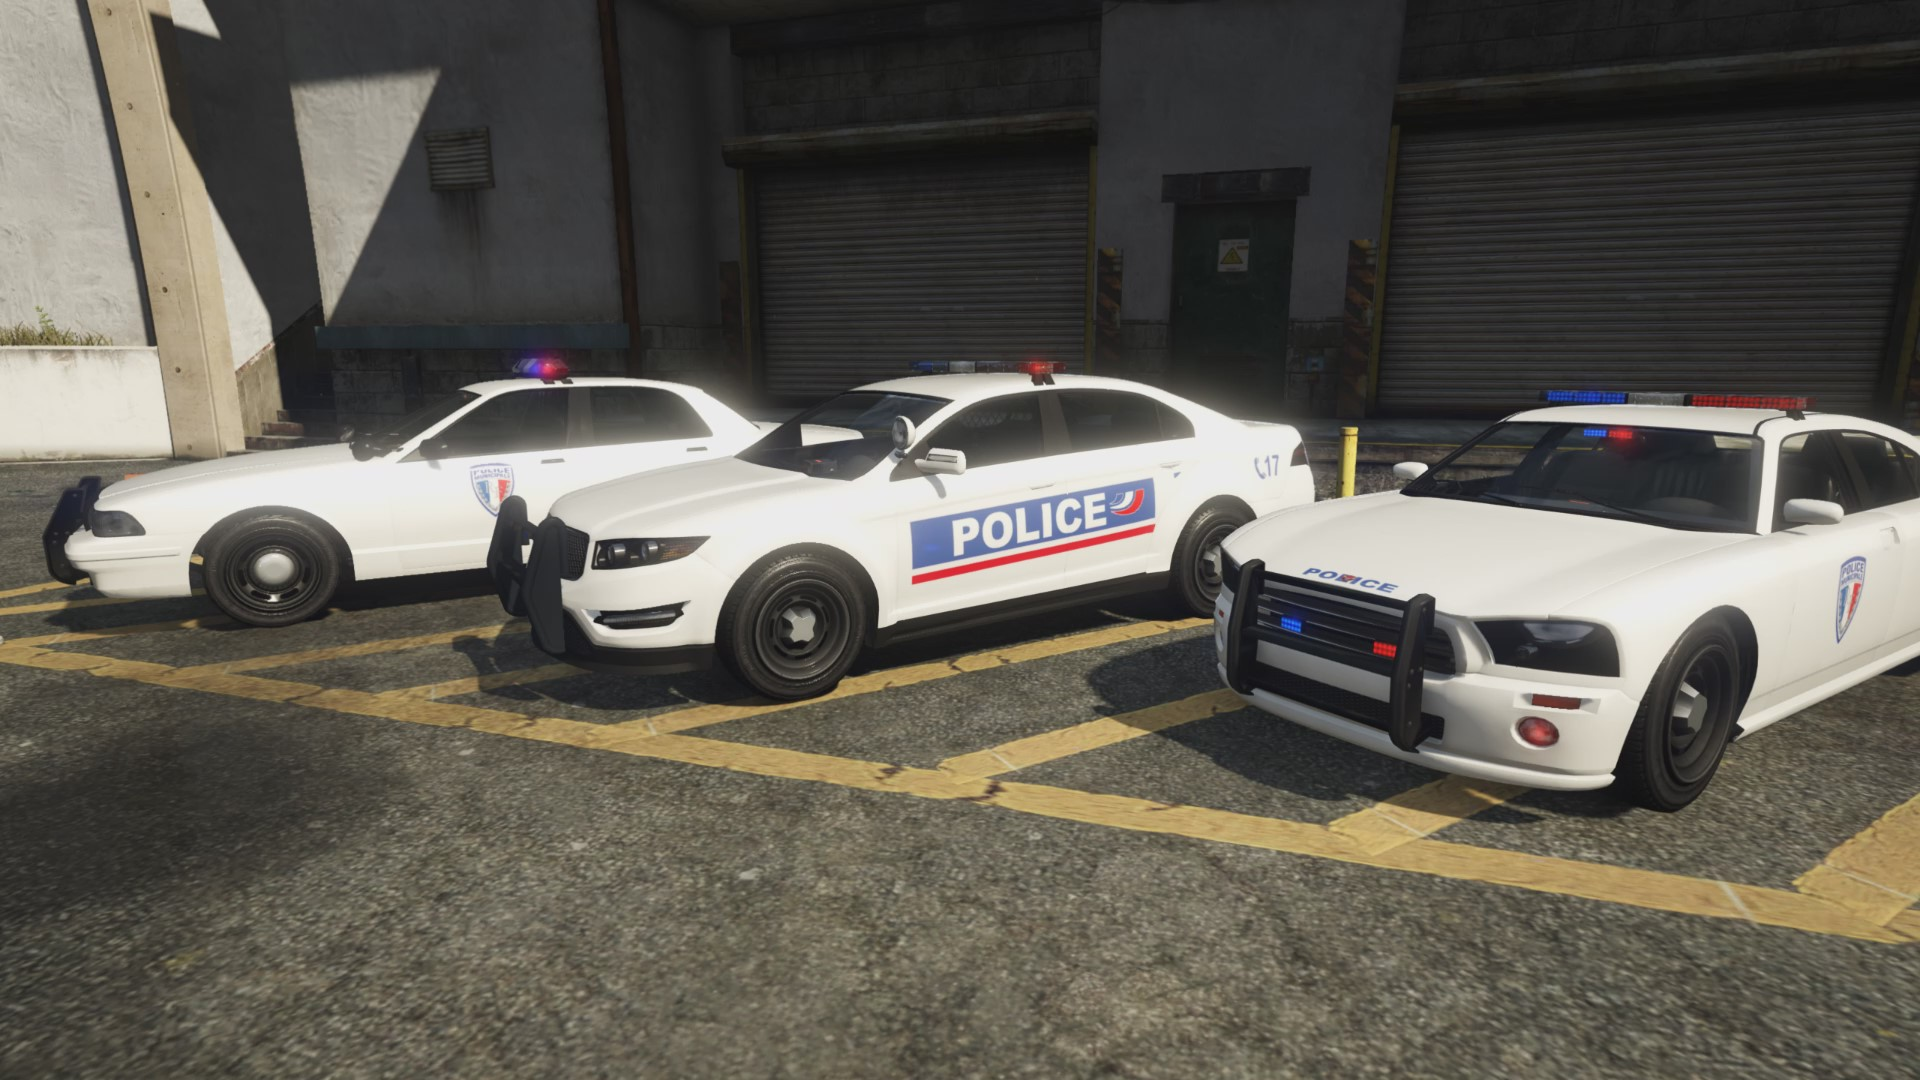 french police texture pack vehicules pour gta v sur gta modding. Black Bedroom Furniture Sets. Home Design Ideas